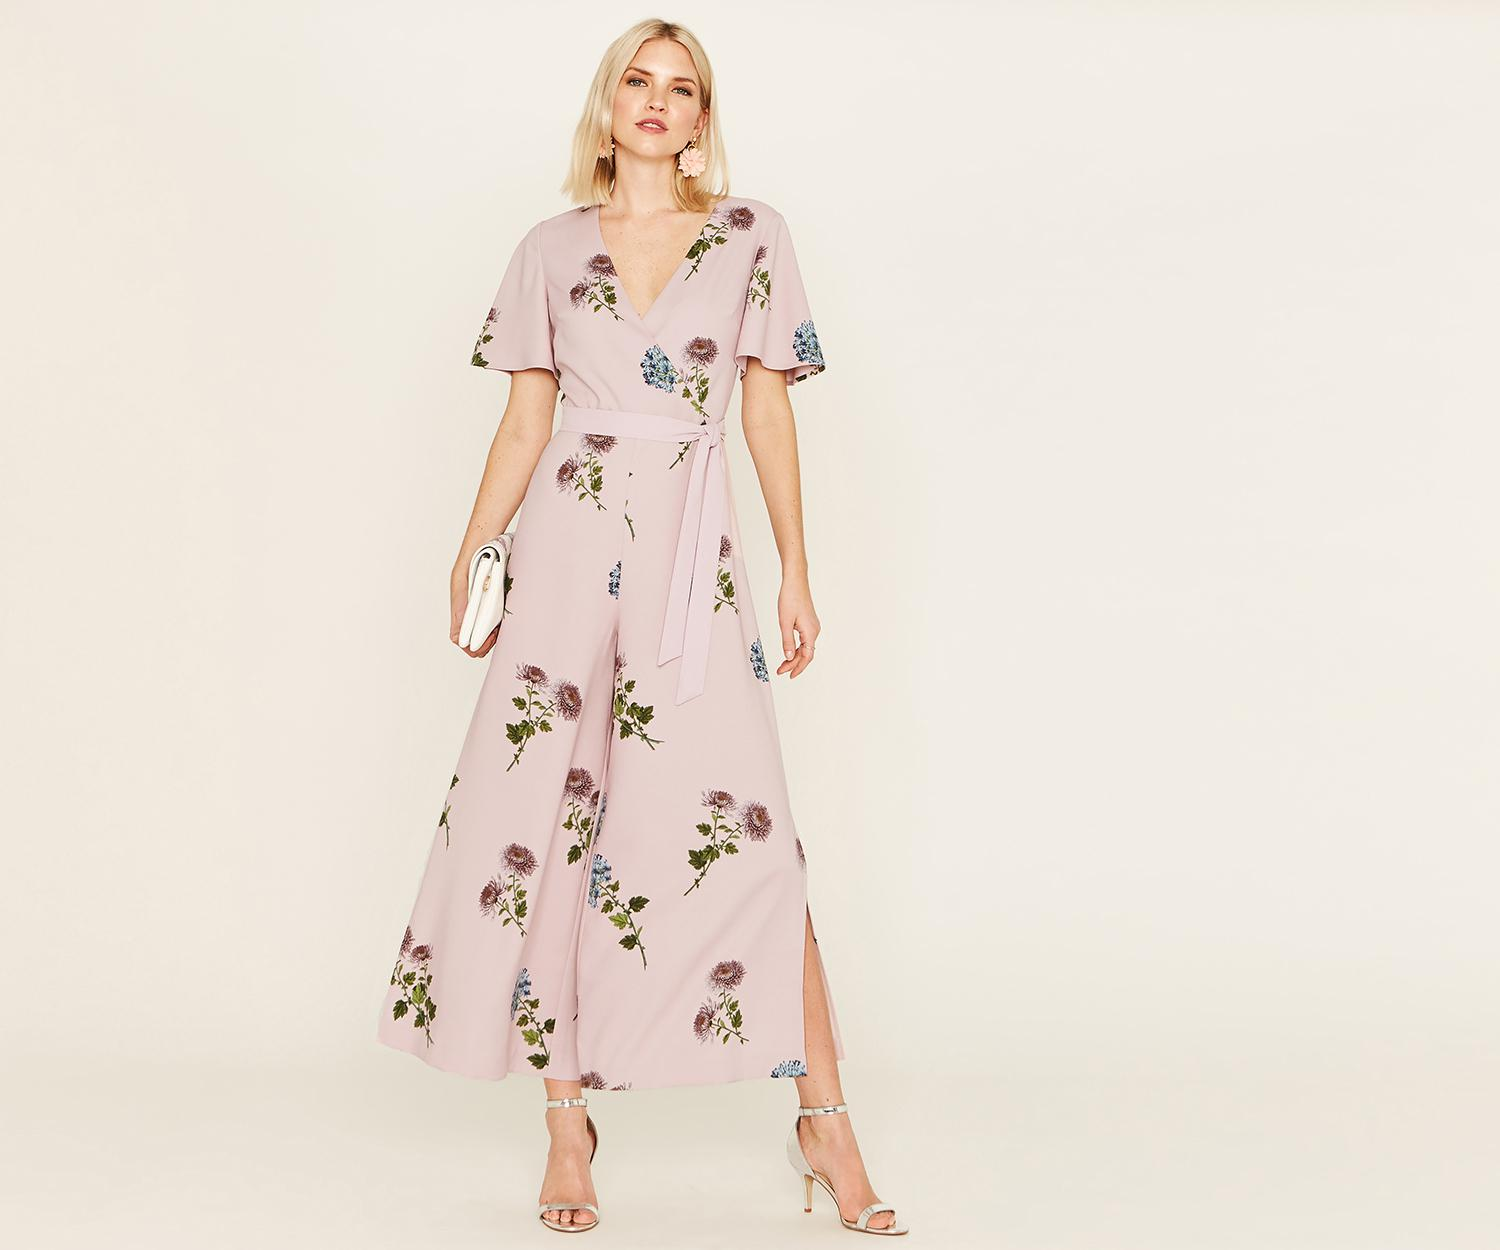 d54a04cd1970 Oasis Nhm Floral Jumpsuit in Pink - Lyst